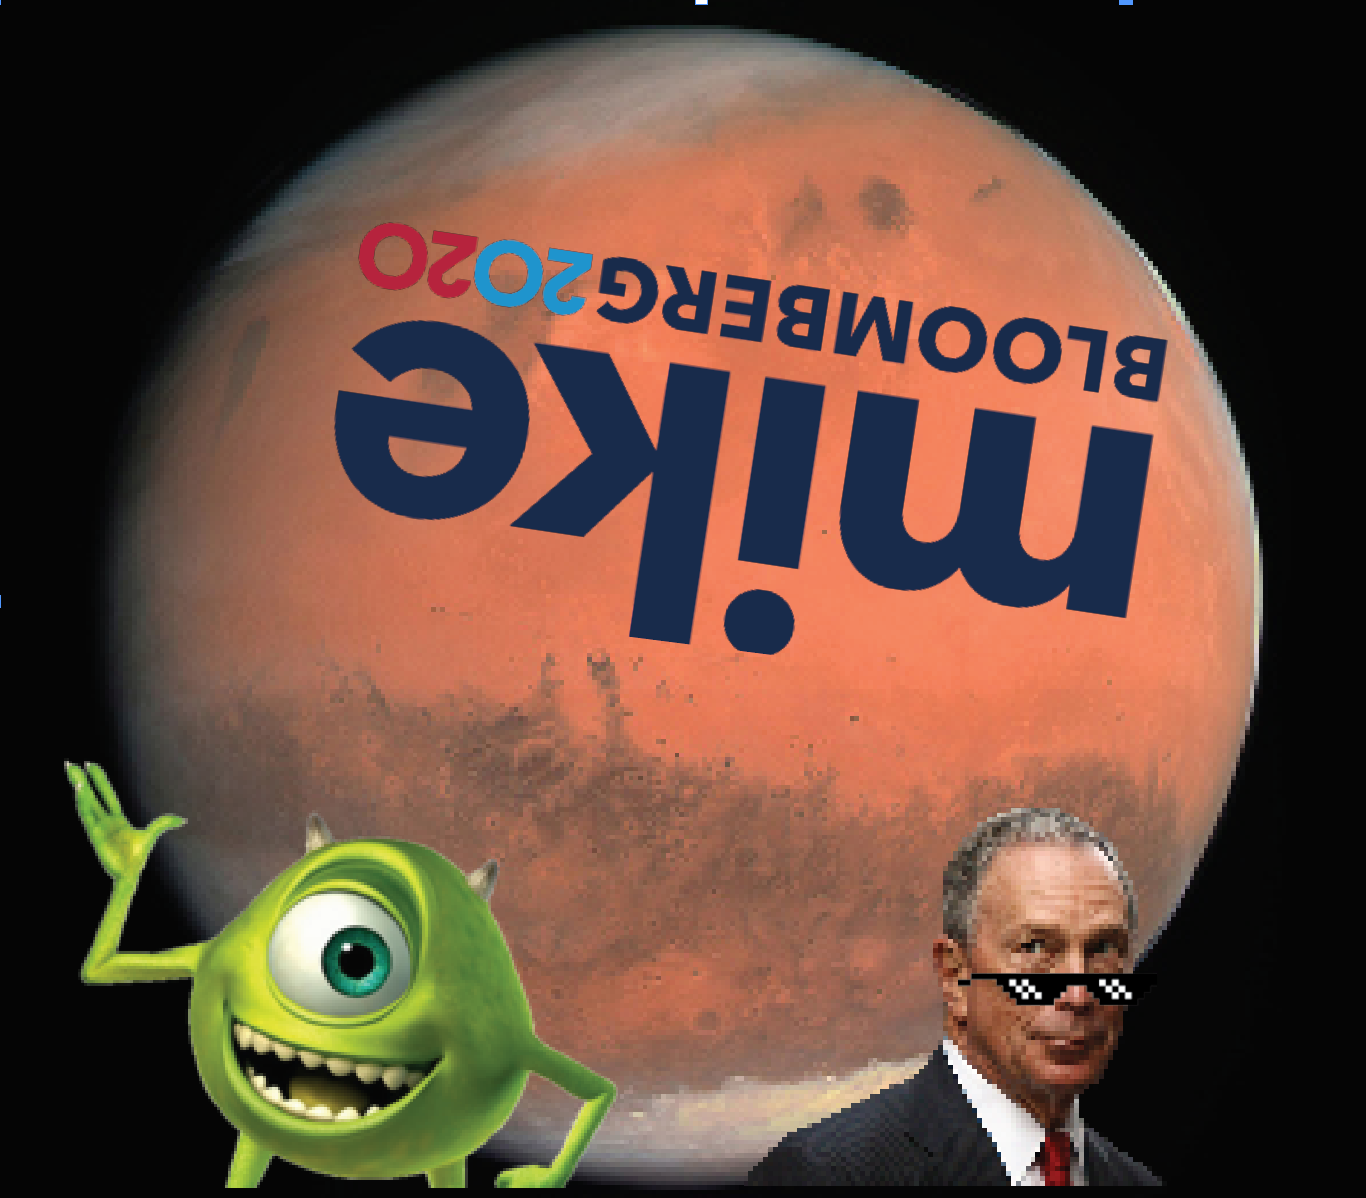 PRESIDENT BLUMBERG BUYS MARS: WHAT DOES THIS MEAN FOR HUMANITY?